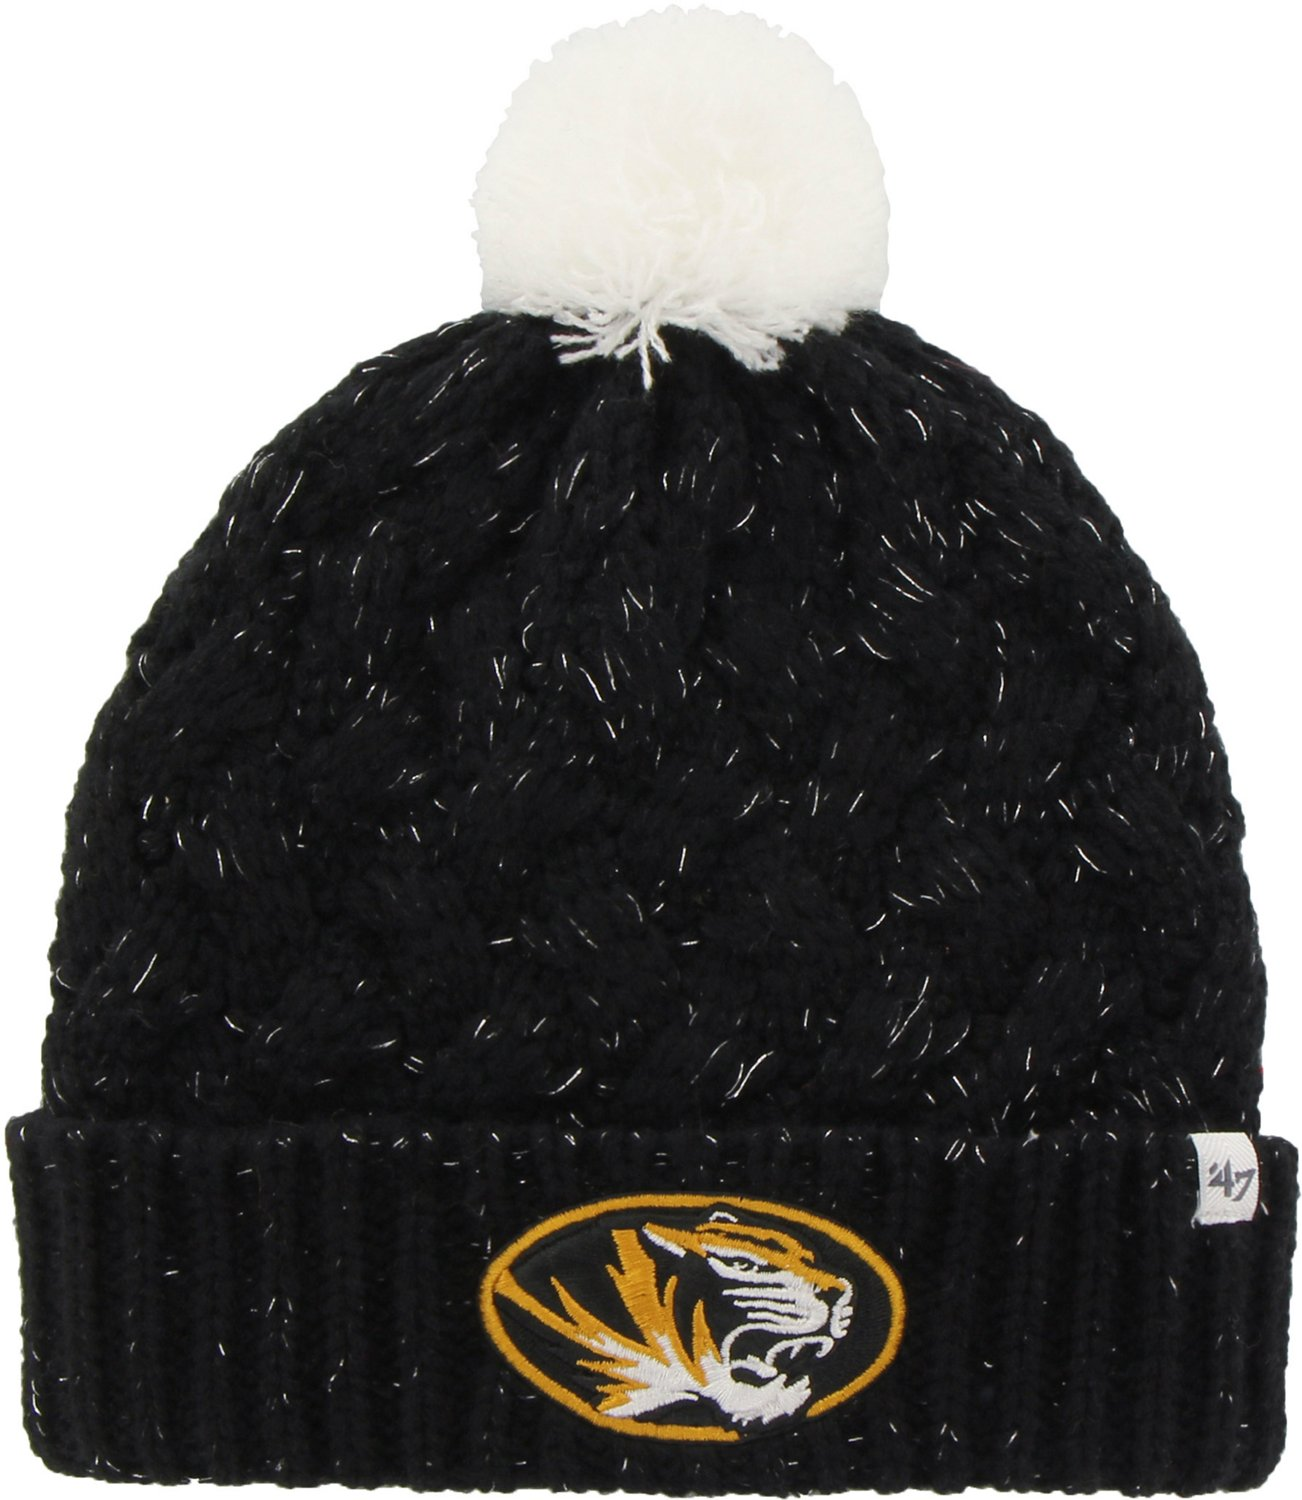 503f303c7f02a ... usa 47 womens university of missouri gameday fiona cuff knit cap  academy eb00b aea93